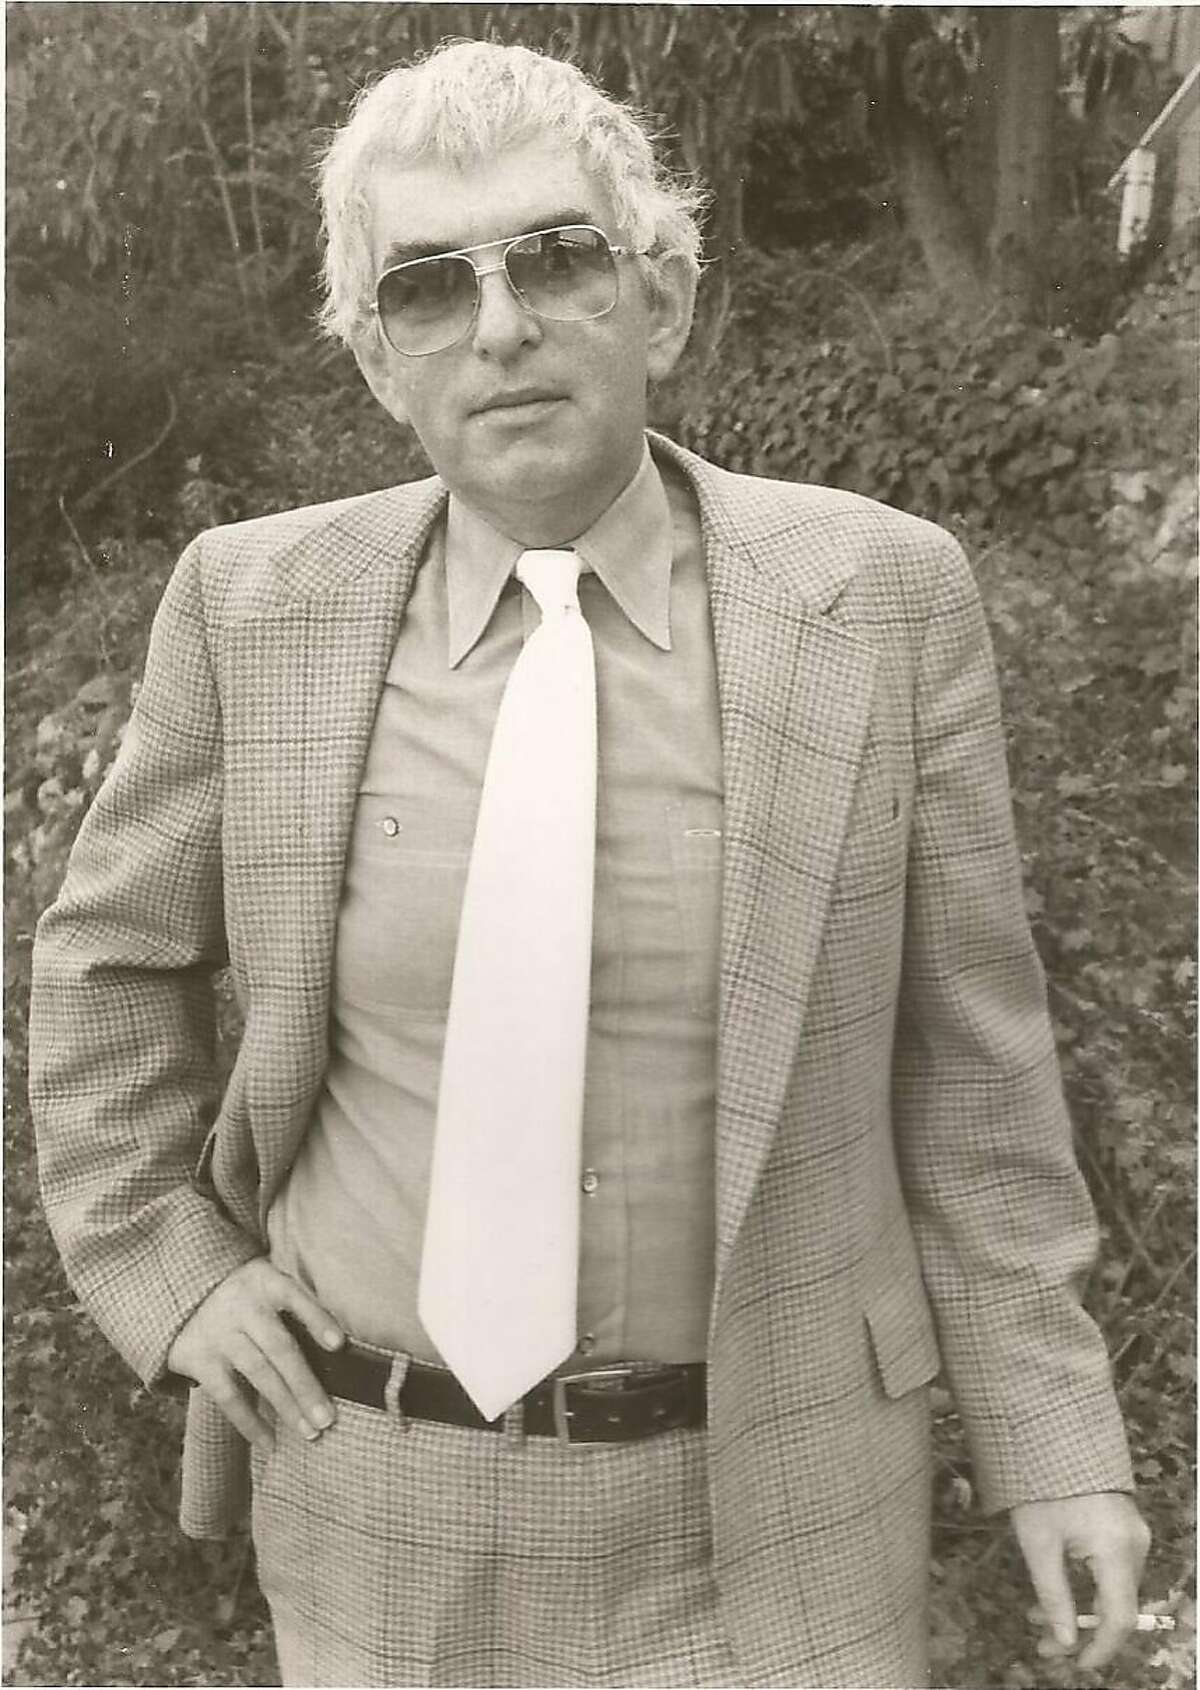 Journalist Phil Tracy, shown here in this undated photo, co-wrote a 1977 expose of Jim Jones and the People's Temple that prompted Jones and his cult to flee to South America.